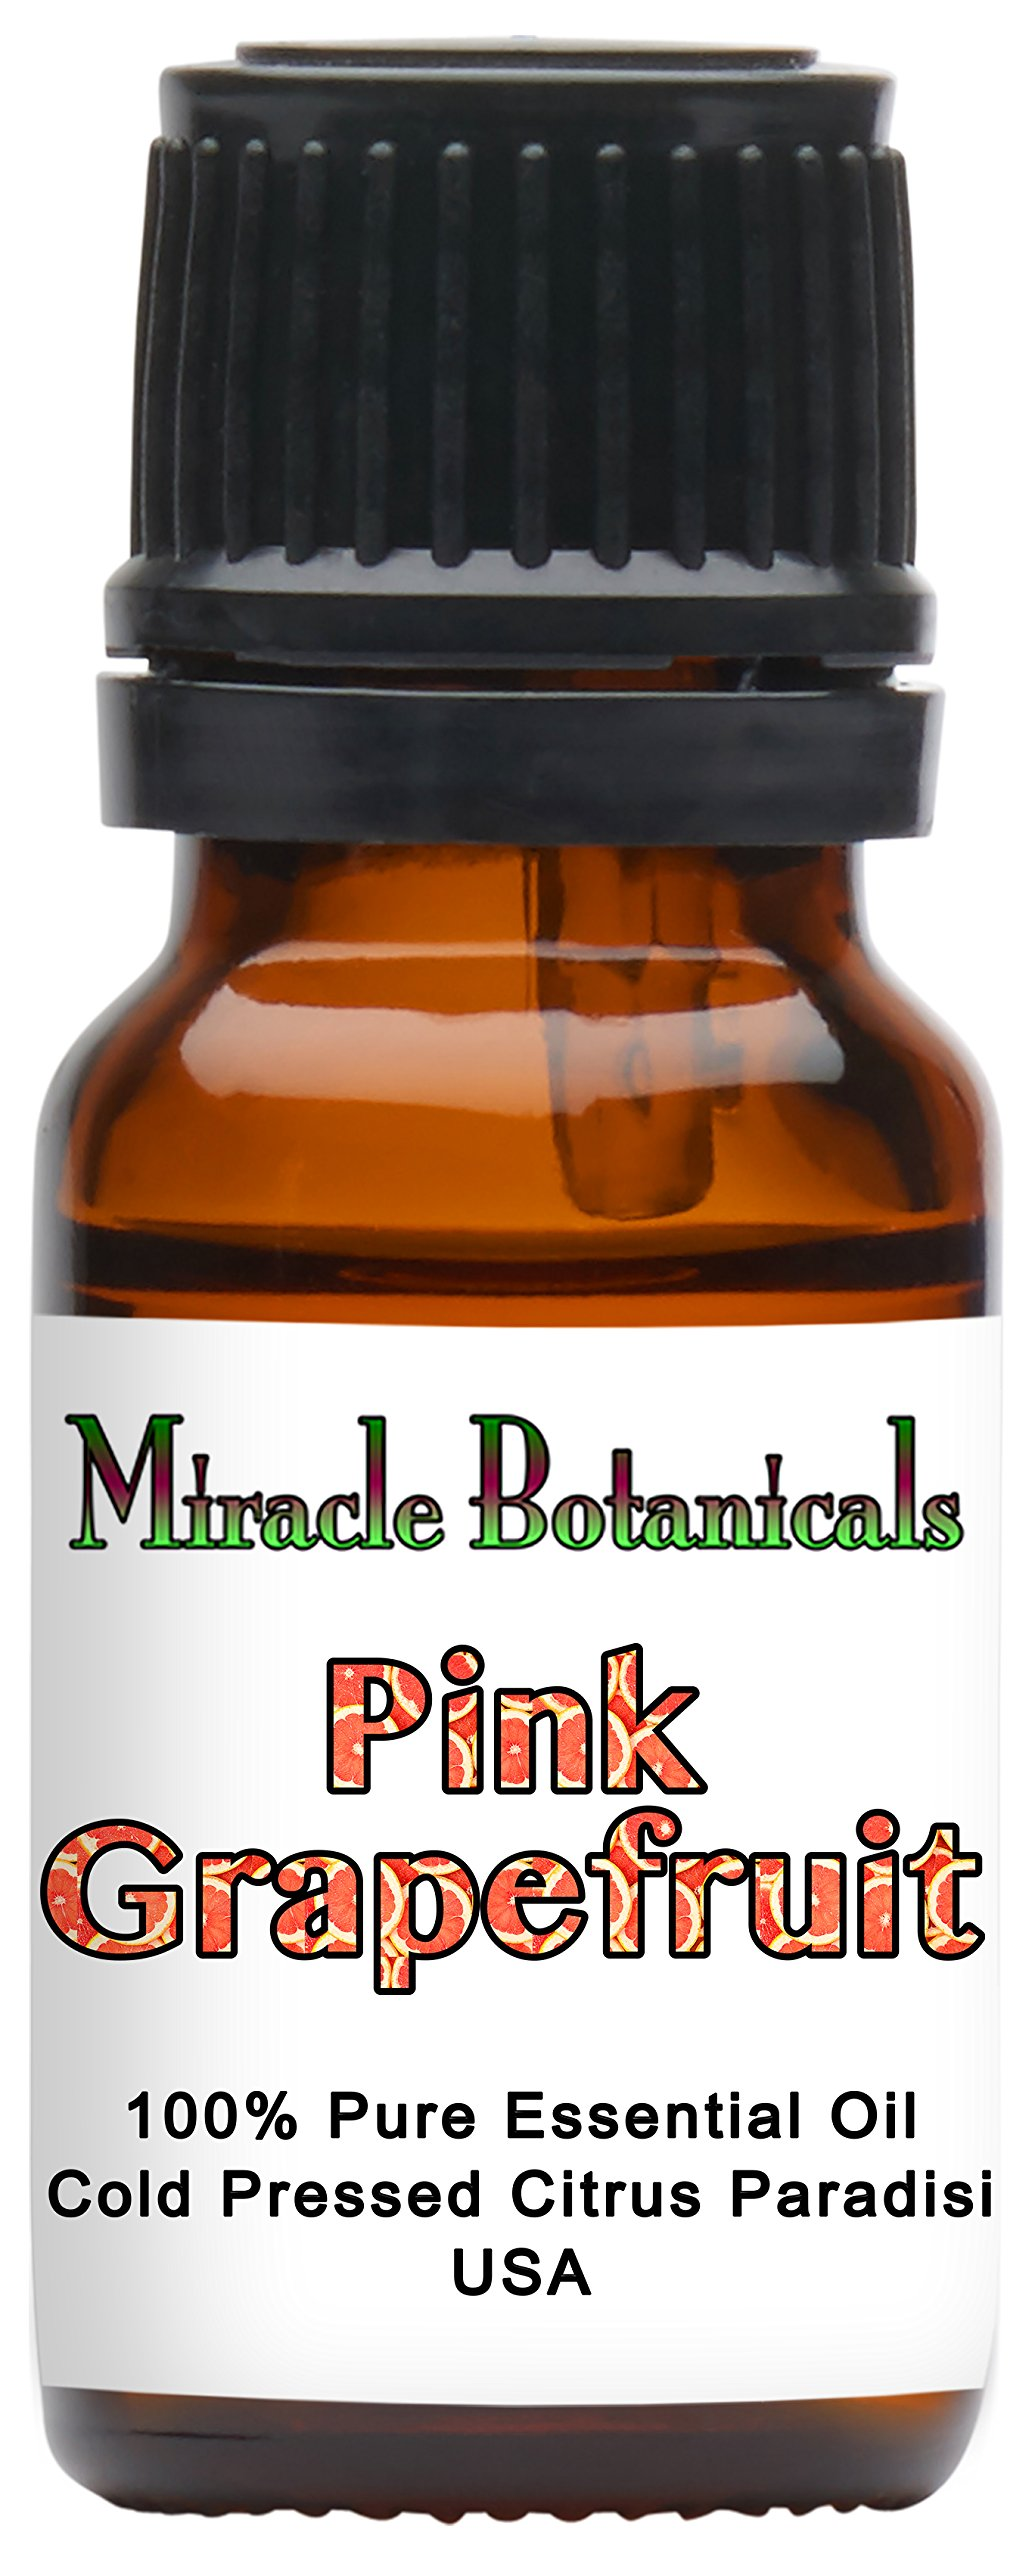 Miracle Botanicals Pink Grapefruit Essential Oil - 100% Pure Citrus Paradisi - 10ml, 30ml or 60ml Sizes - Therapeutic Grade - 10ml